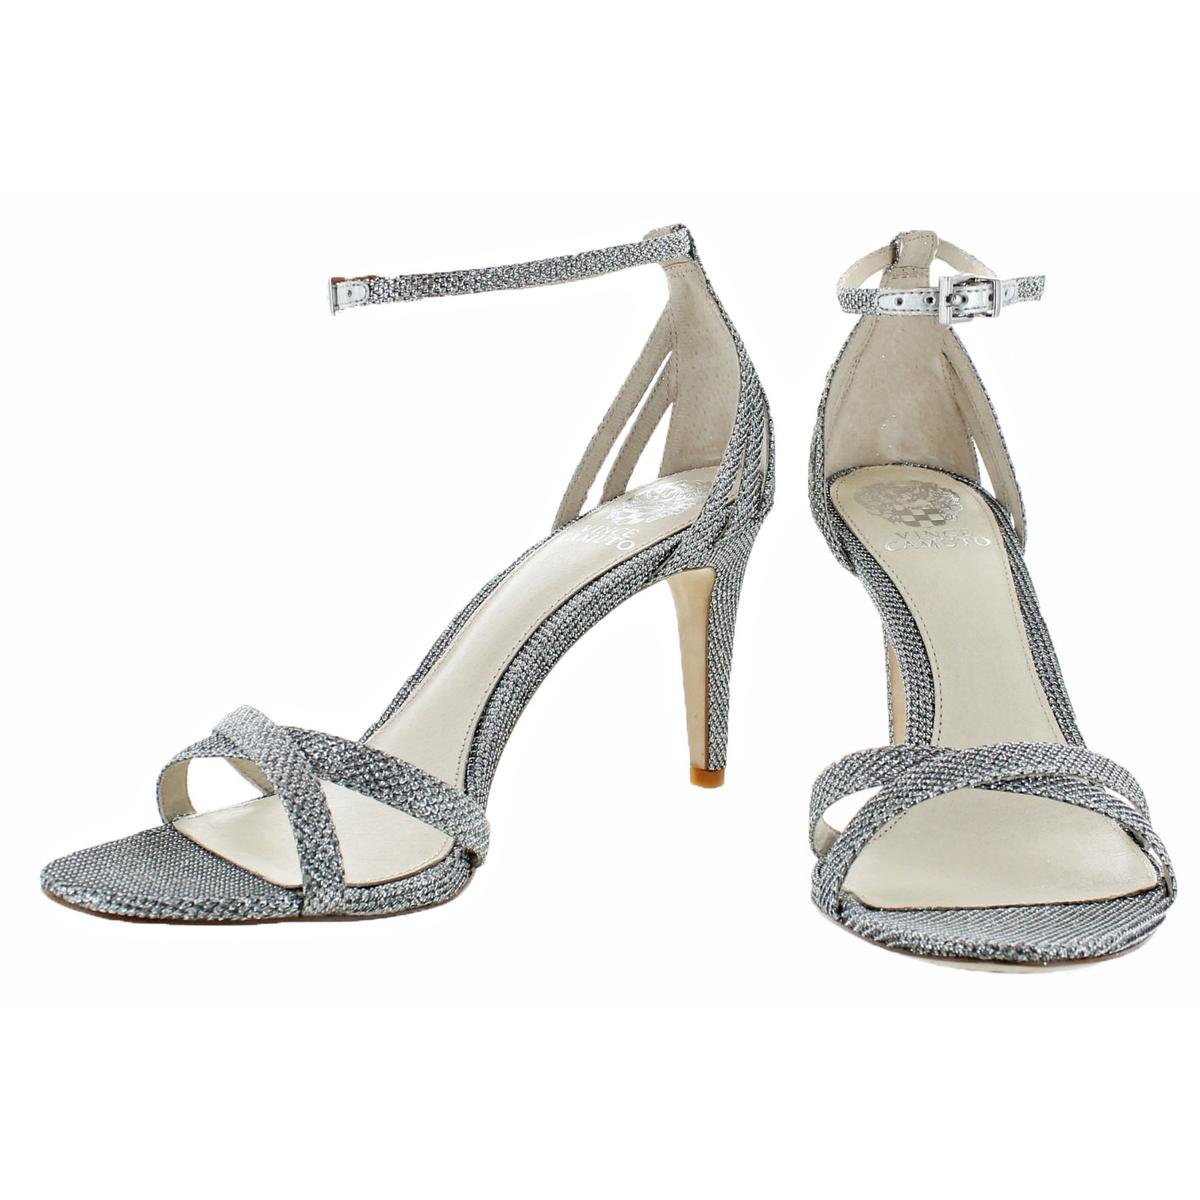 ae5b96790b7 Vince Camuto Camron Women s Leather Open Toe Criss-Cross Dressy ...